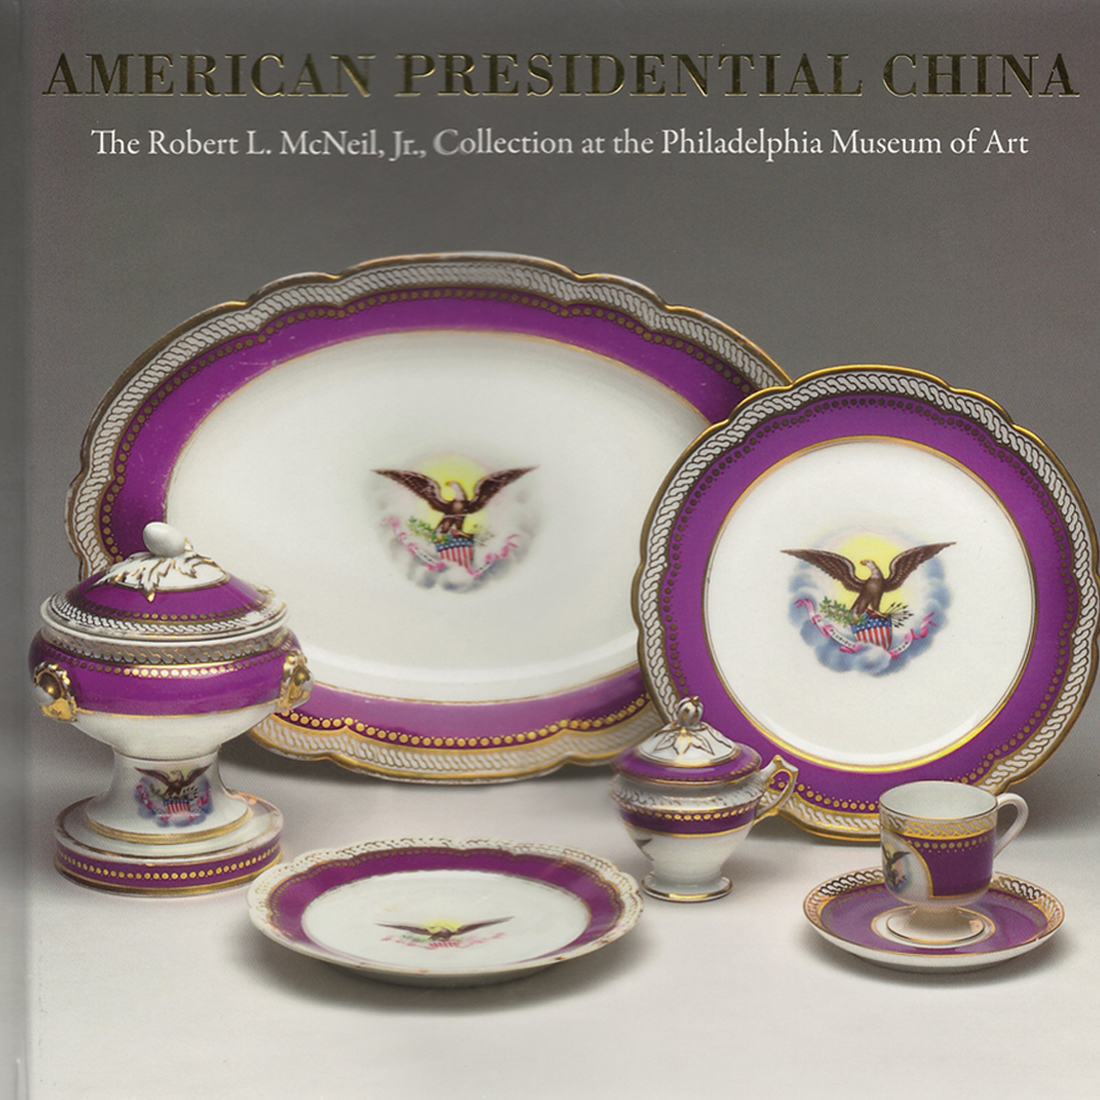 official white house china,presidential china,raleigh degeer amyx,